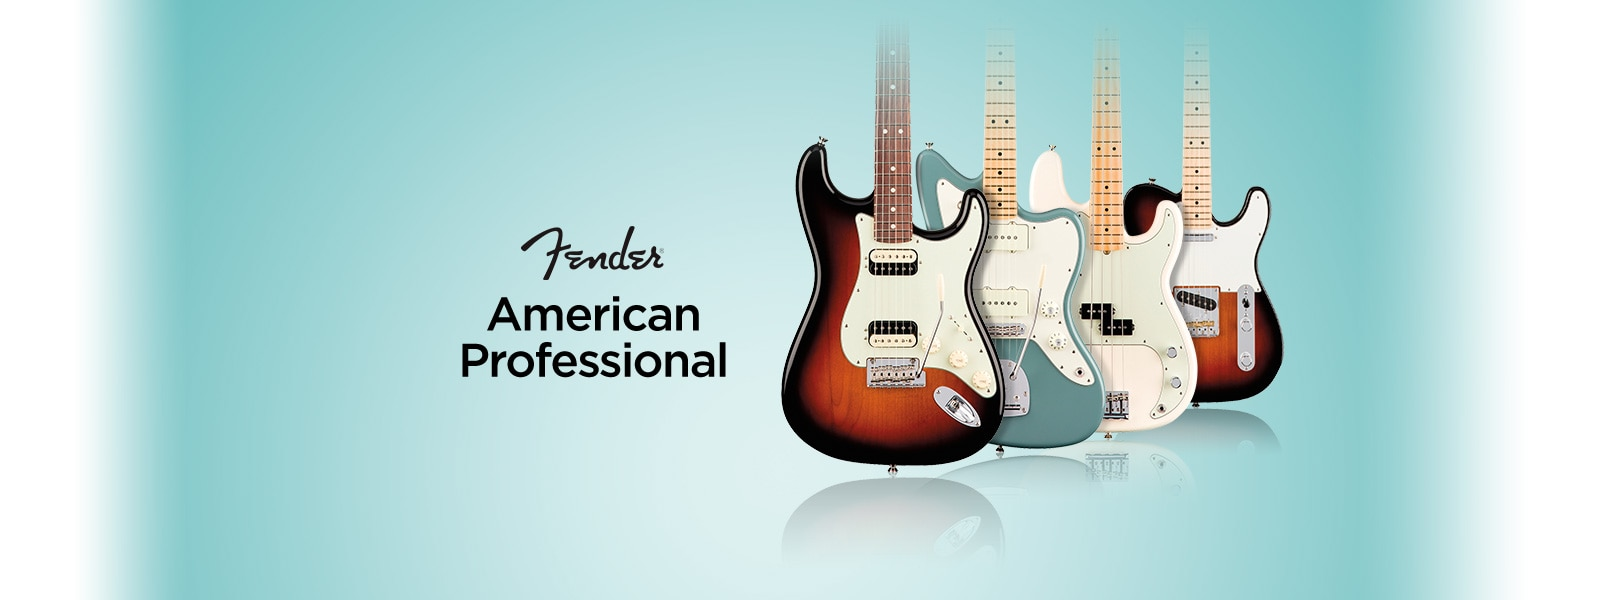 American Professional